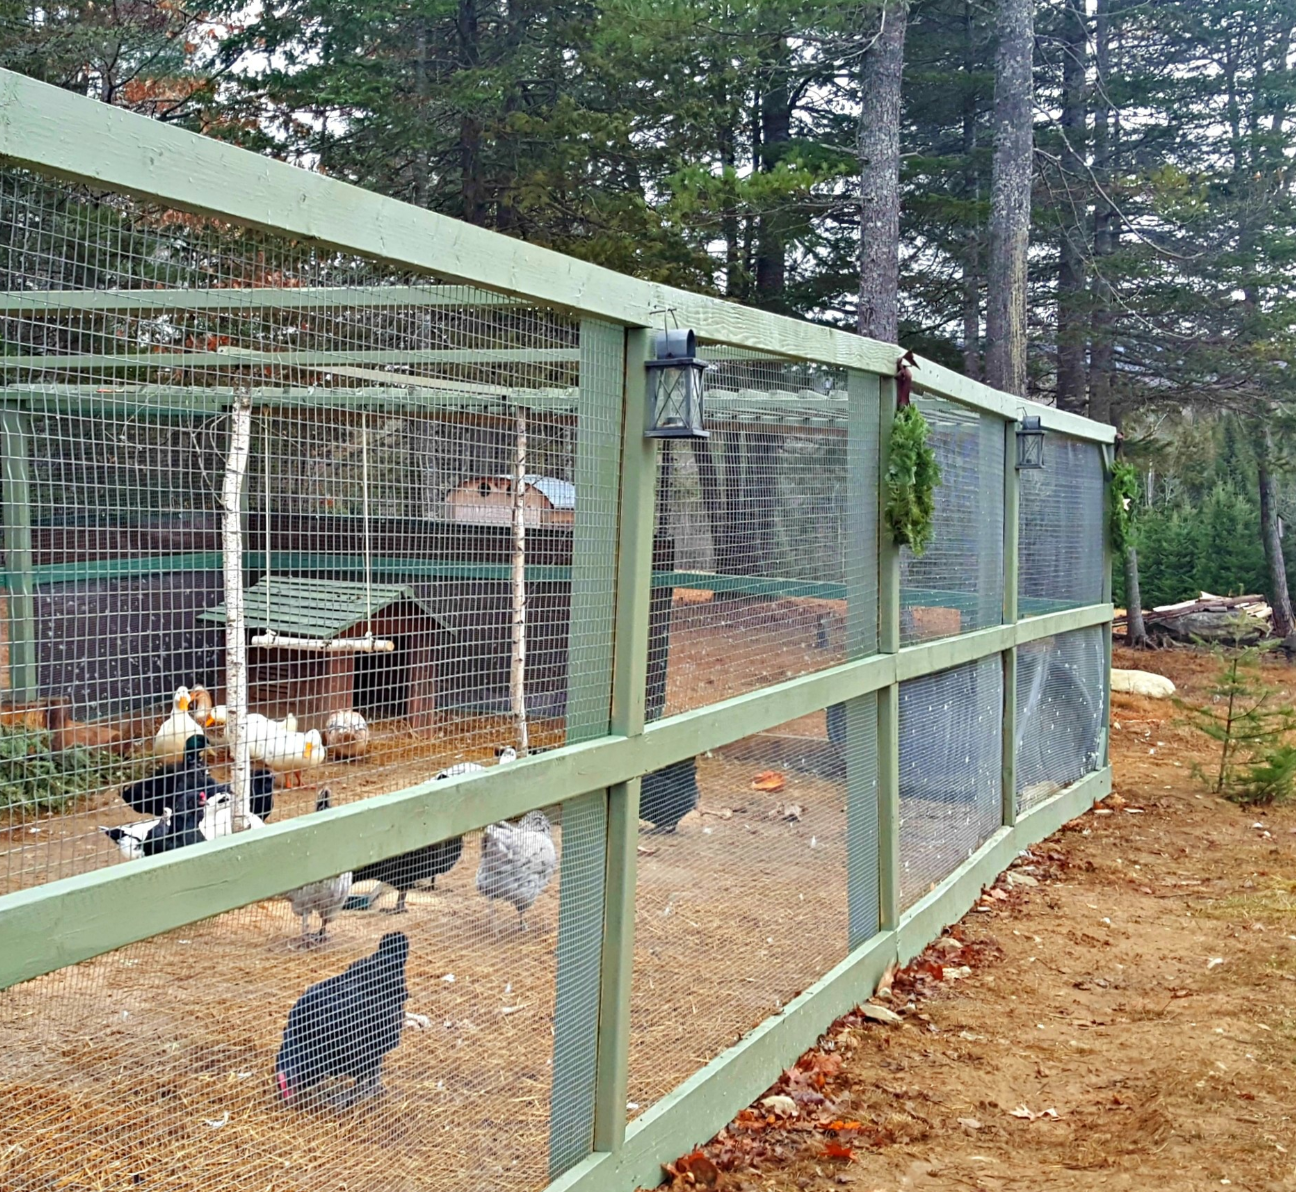 How To Build A Predator-Proof Chicken Run